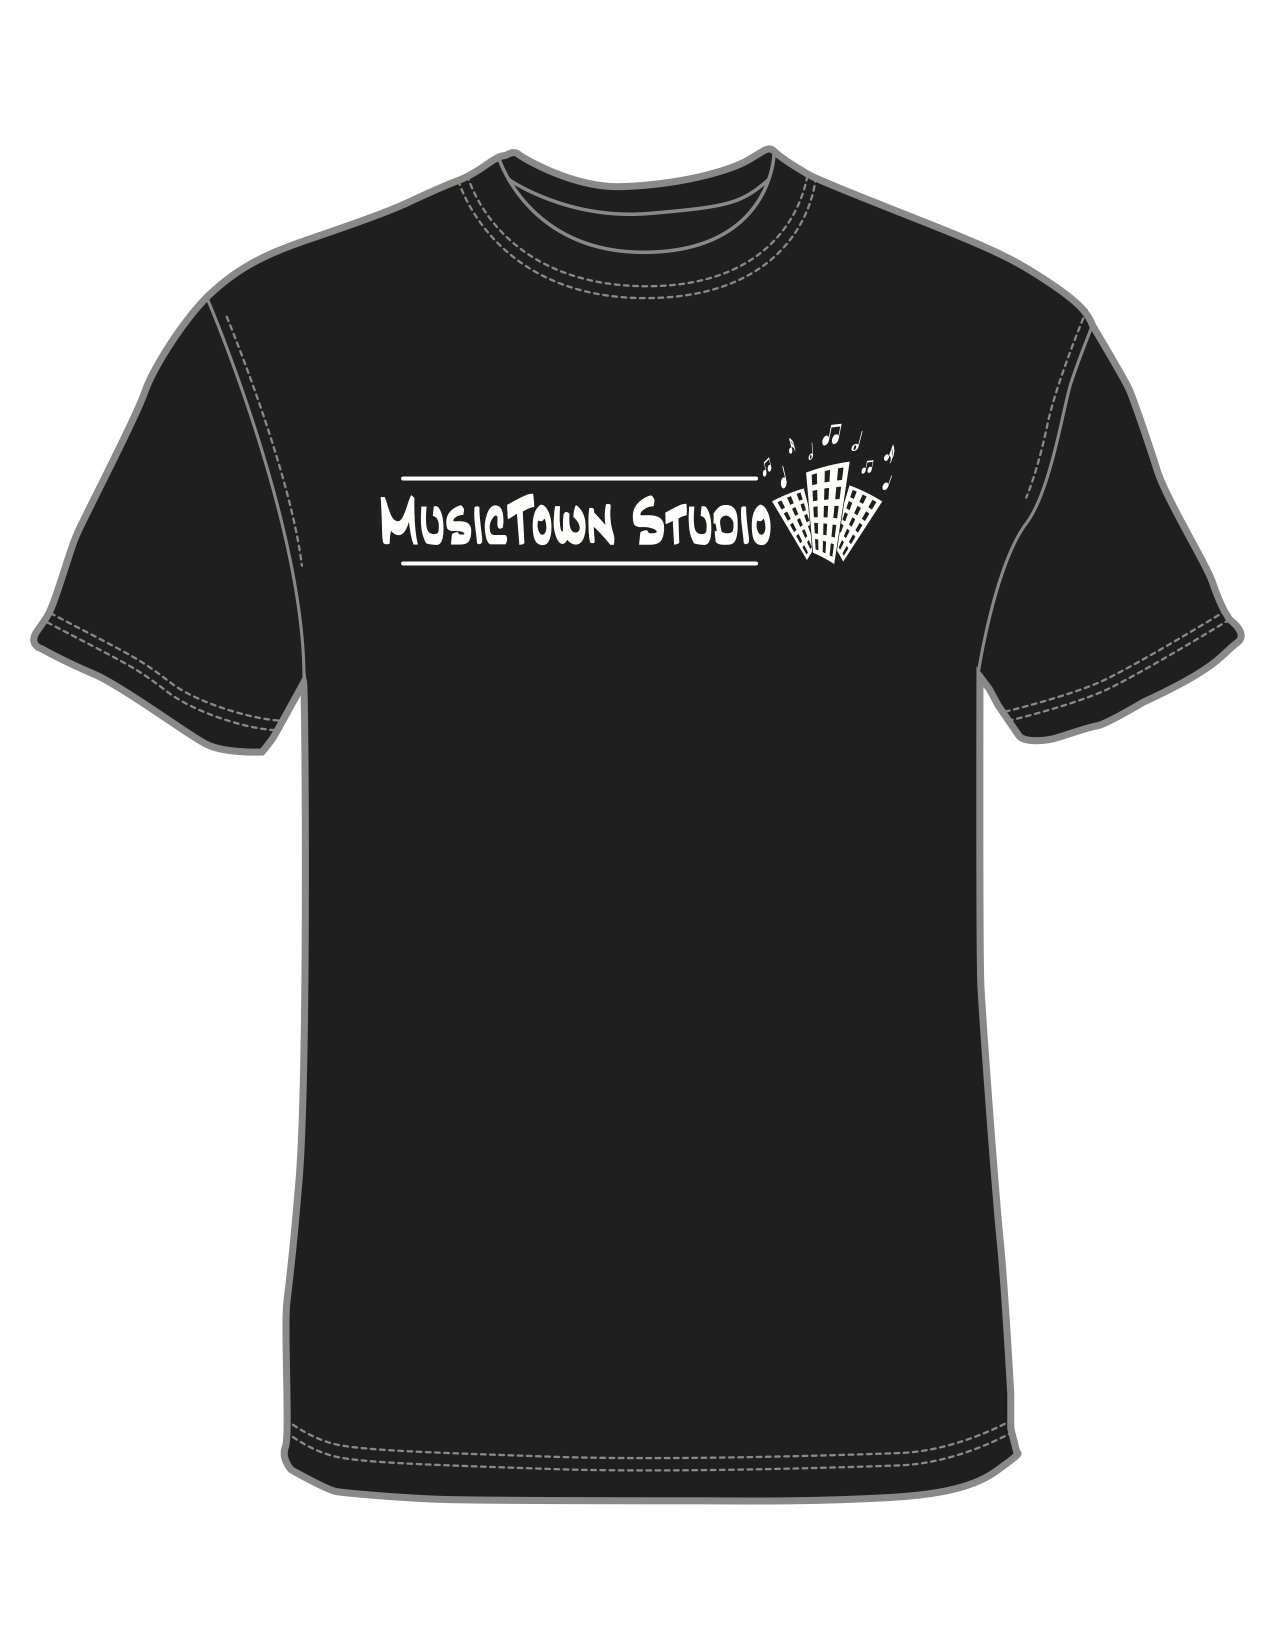 Design your own t-shirt business - T Shirts For Sale Again Musictown Studio T Shirts For Sale Again Musictown Studio Design Your Own